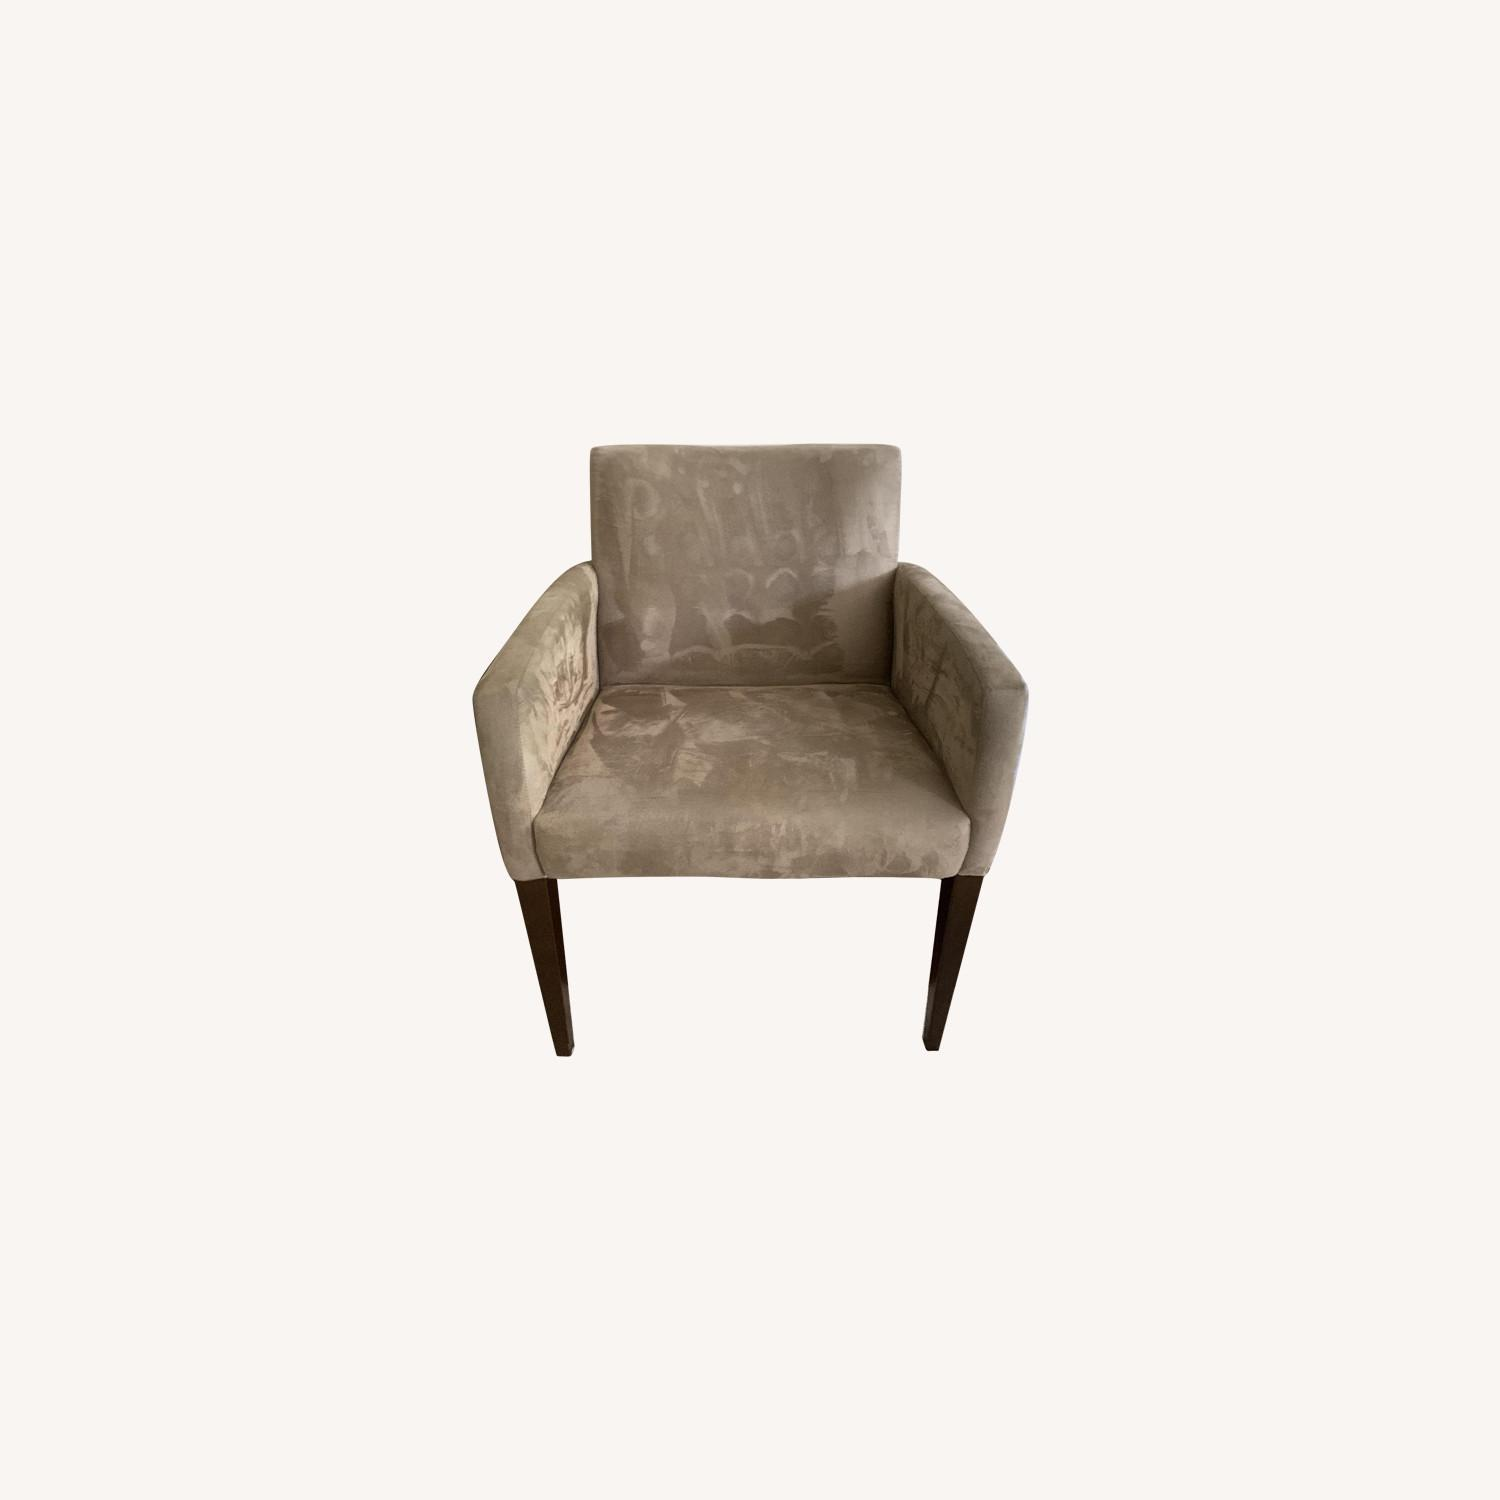 Brazilian Accent Chairs - image-0